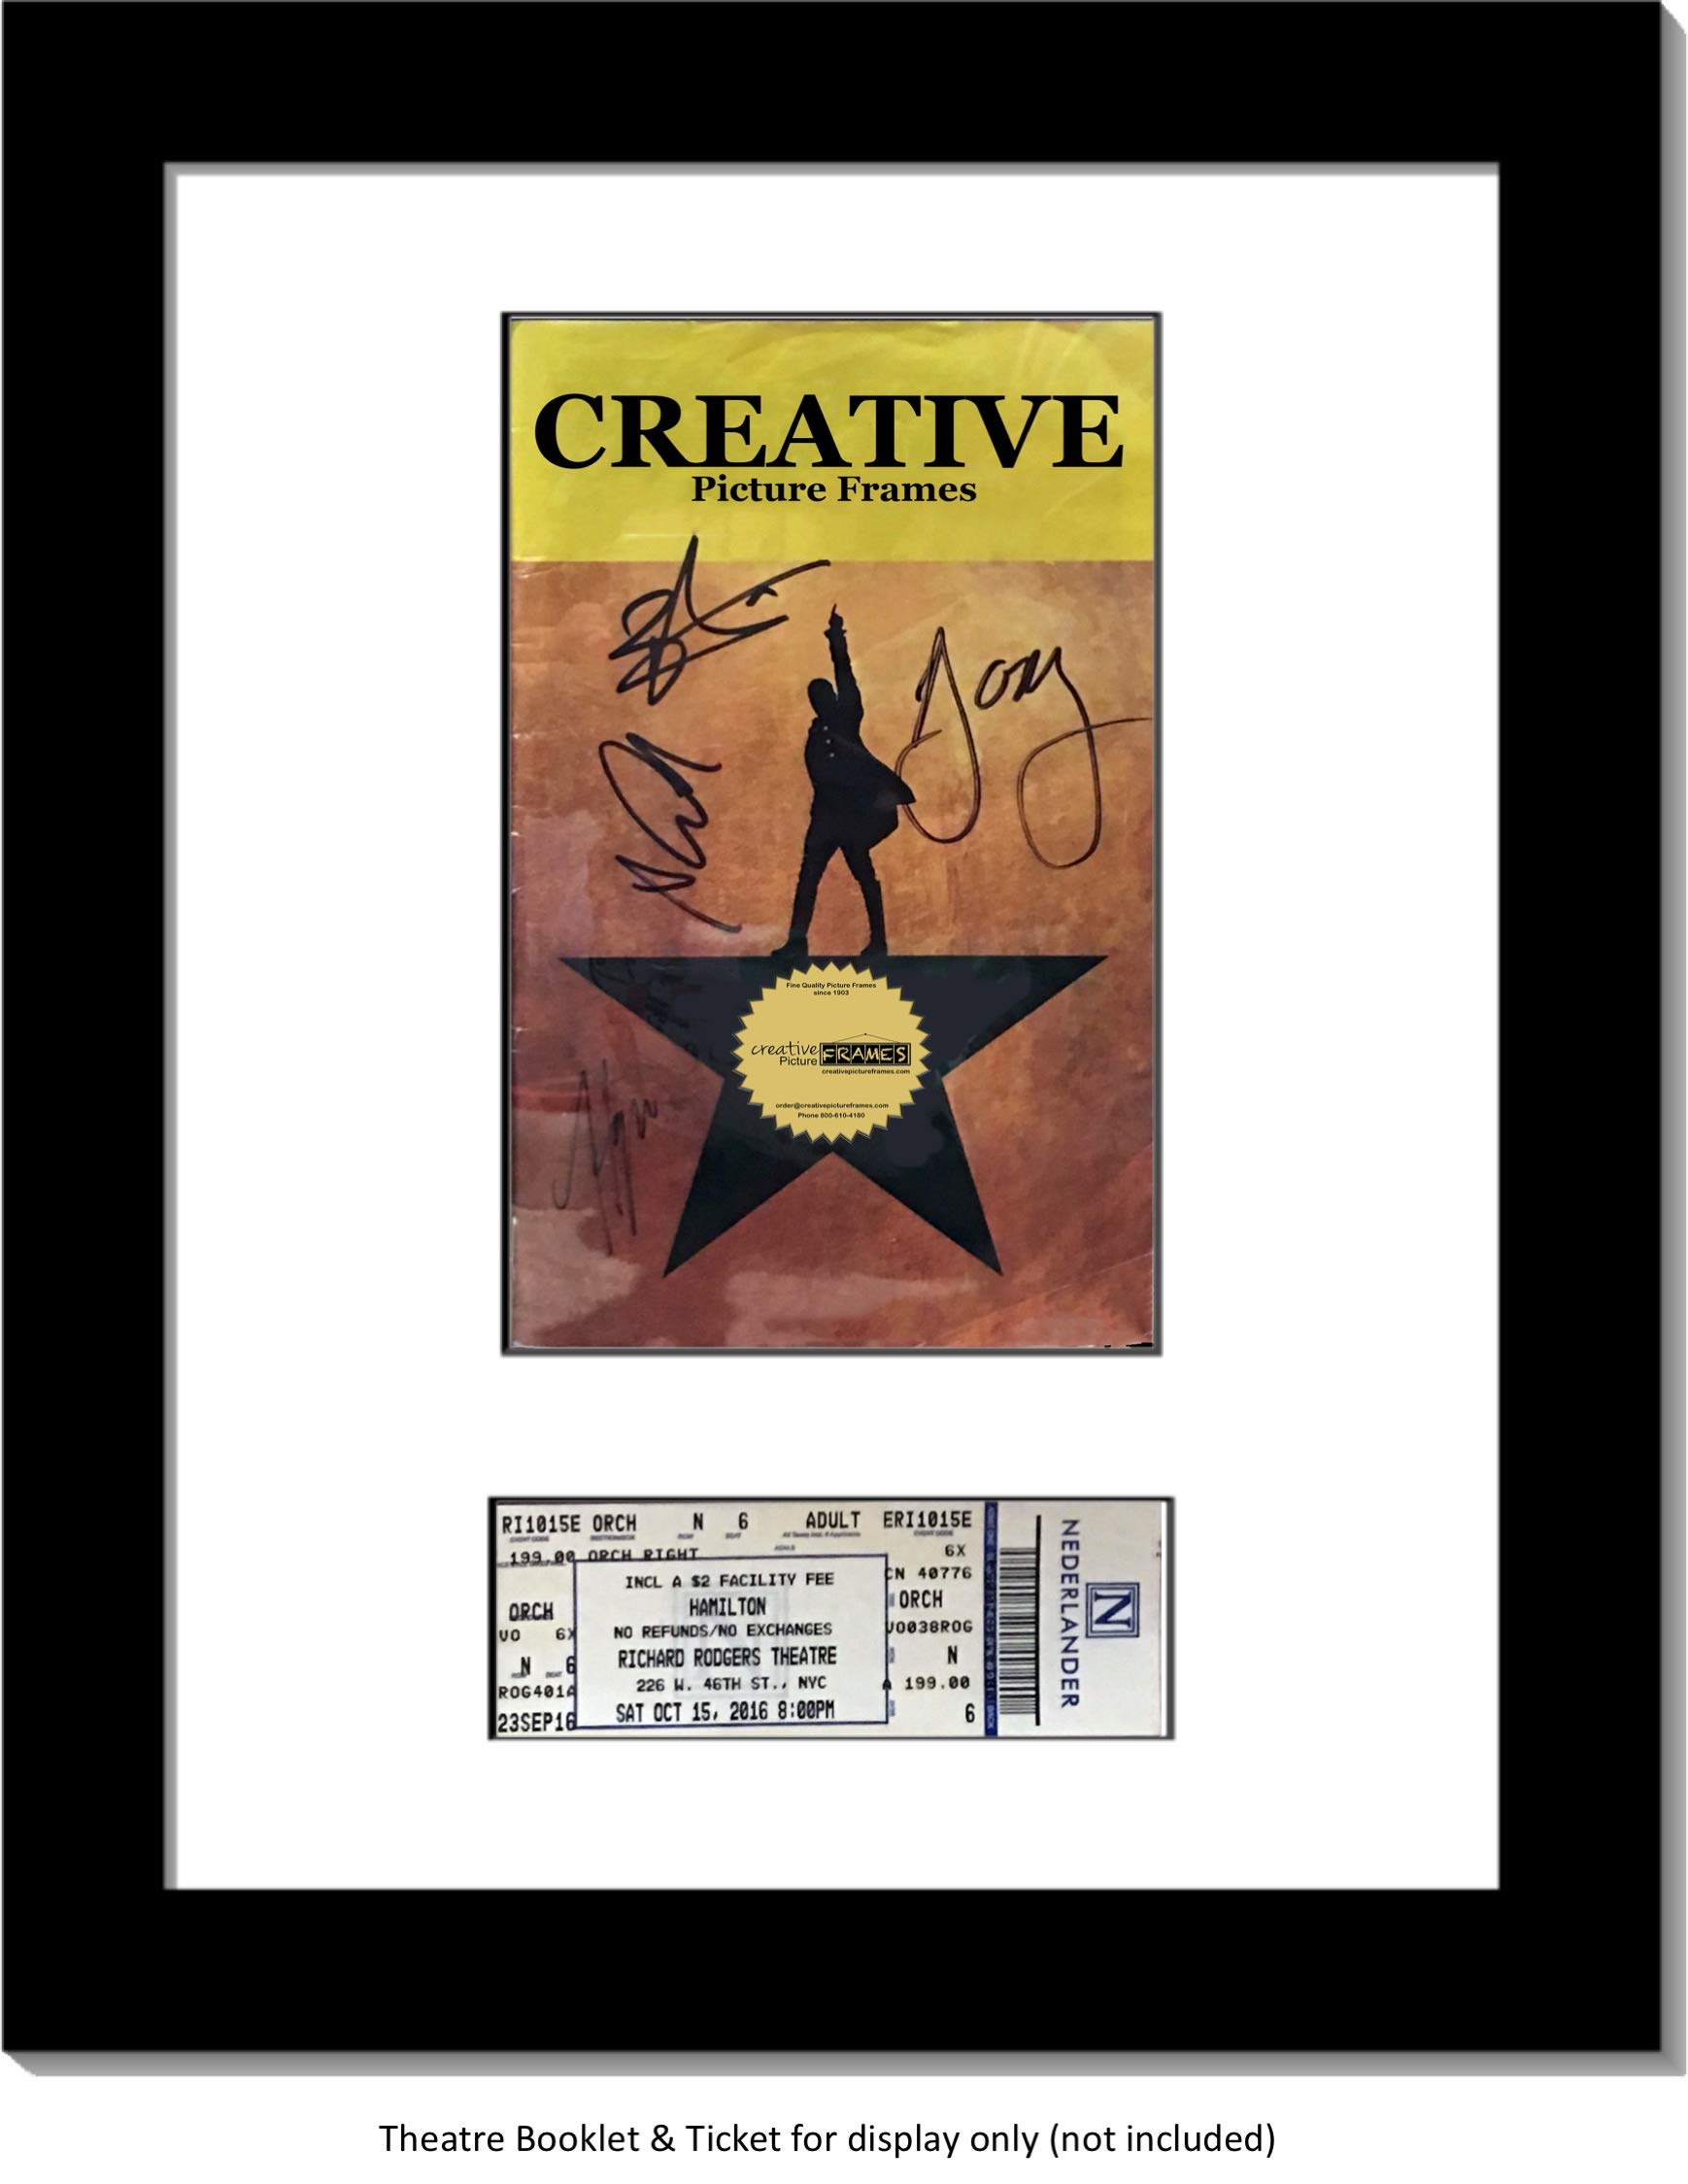 CreativePF [11x14bk-w] Black Theatre Frame with White Matting, Holds 5.5x8.5-inch Media Plus Ticket Including Installed Wall Hanger (Theatre Bill Not Included) by Creative Picture Frames